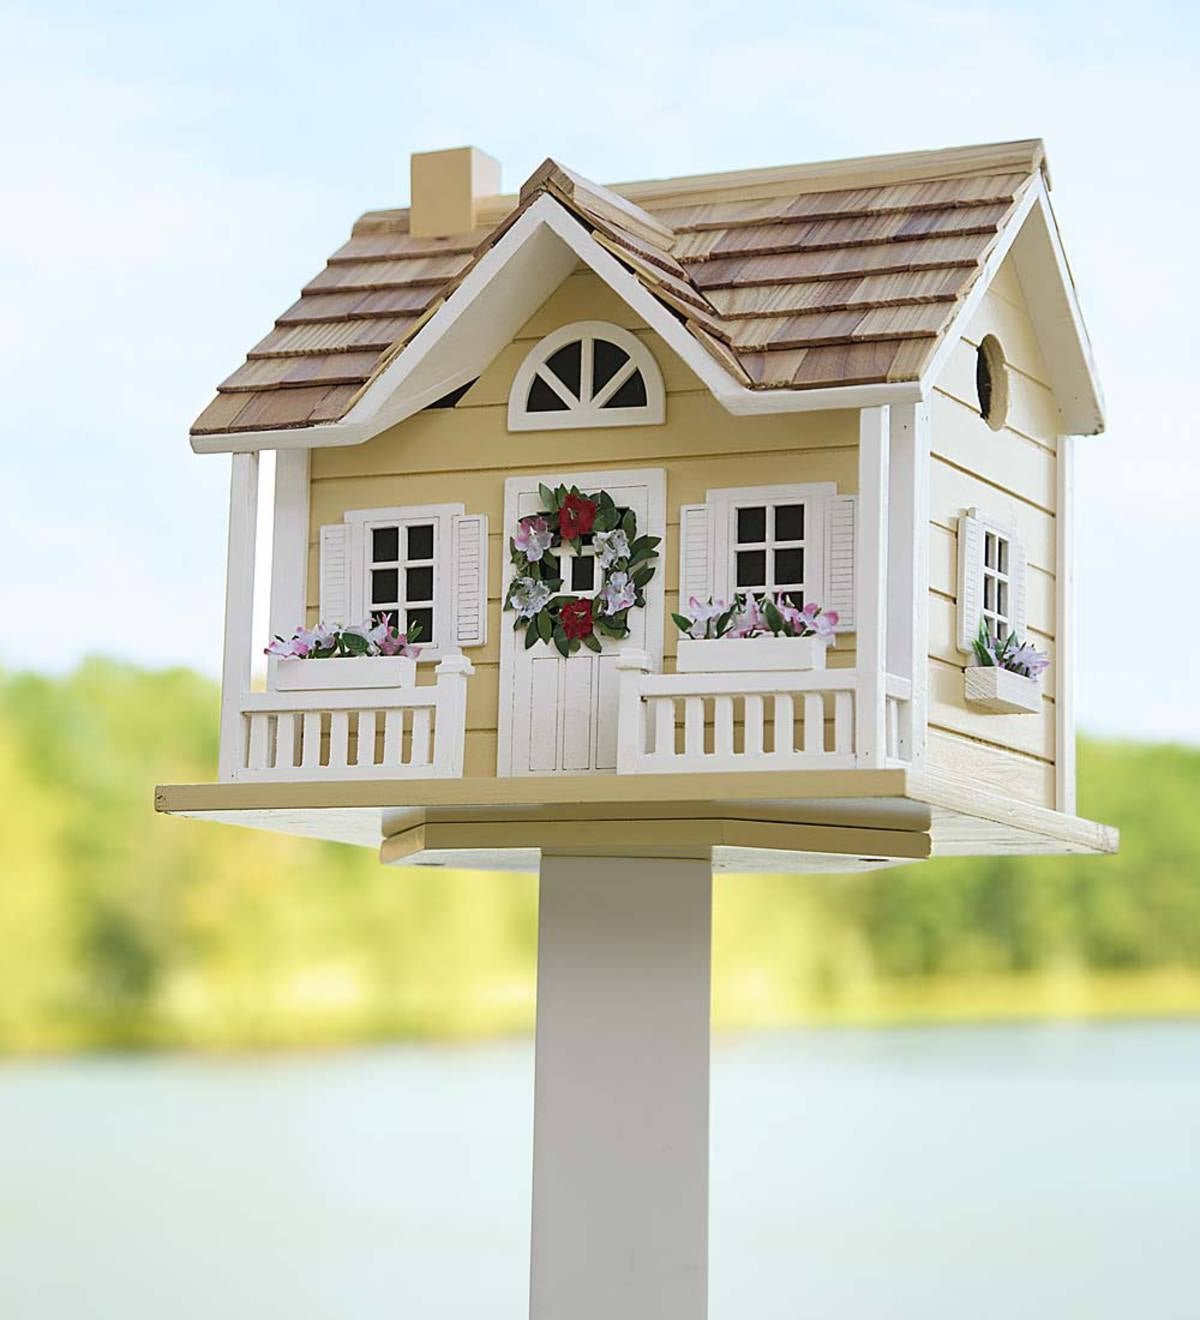 Wreath Cottage Birdhouse and Pole Set